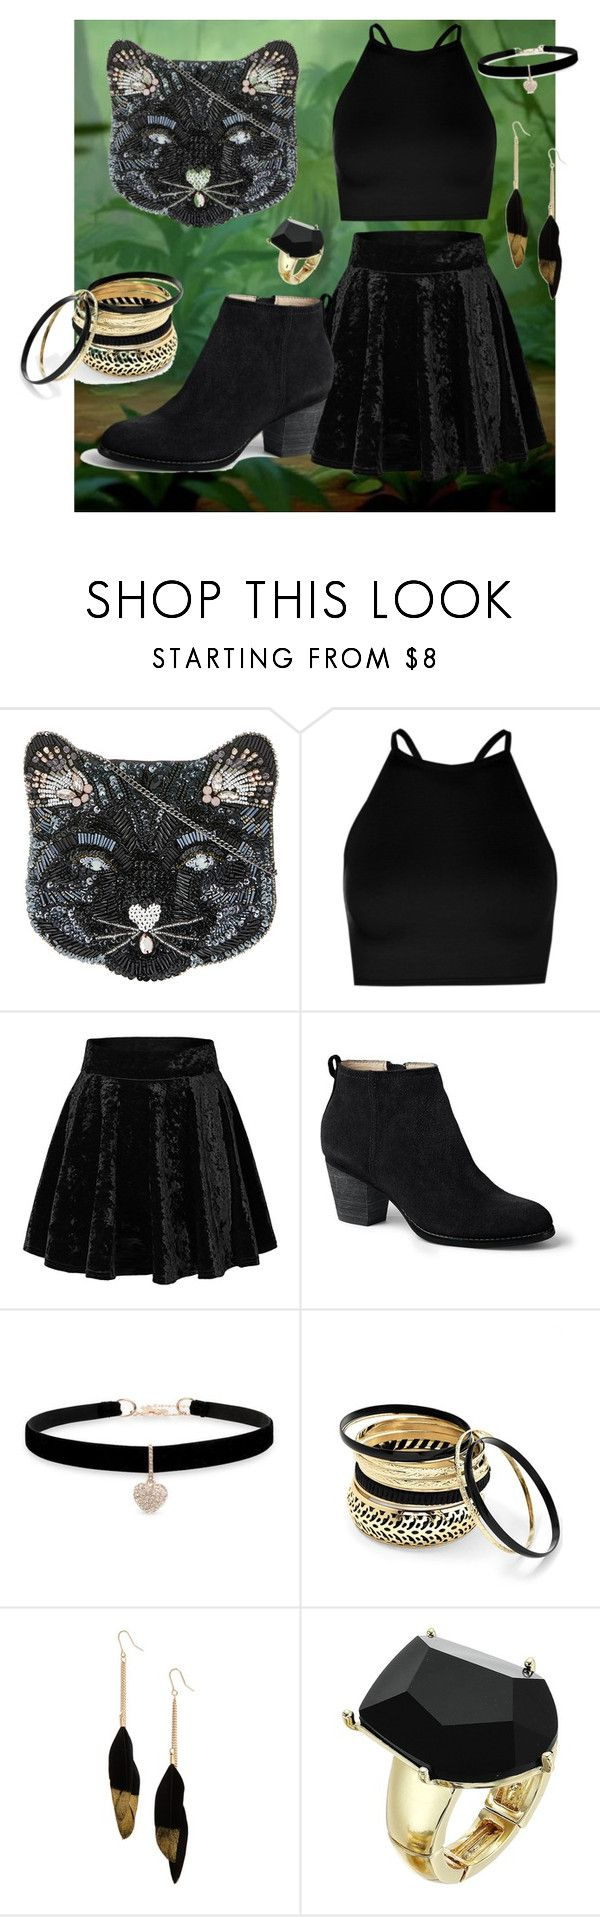 """Bagheera, the jungle book"" by jhmb on Polyvore featuring Accessorize, Boohoo, Lands' End, Betsey Johnson, Venus, Panacea and GUESS"